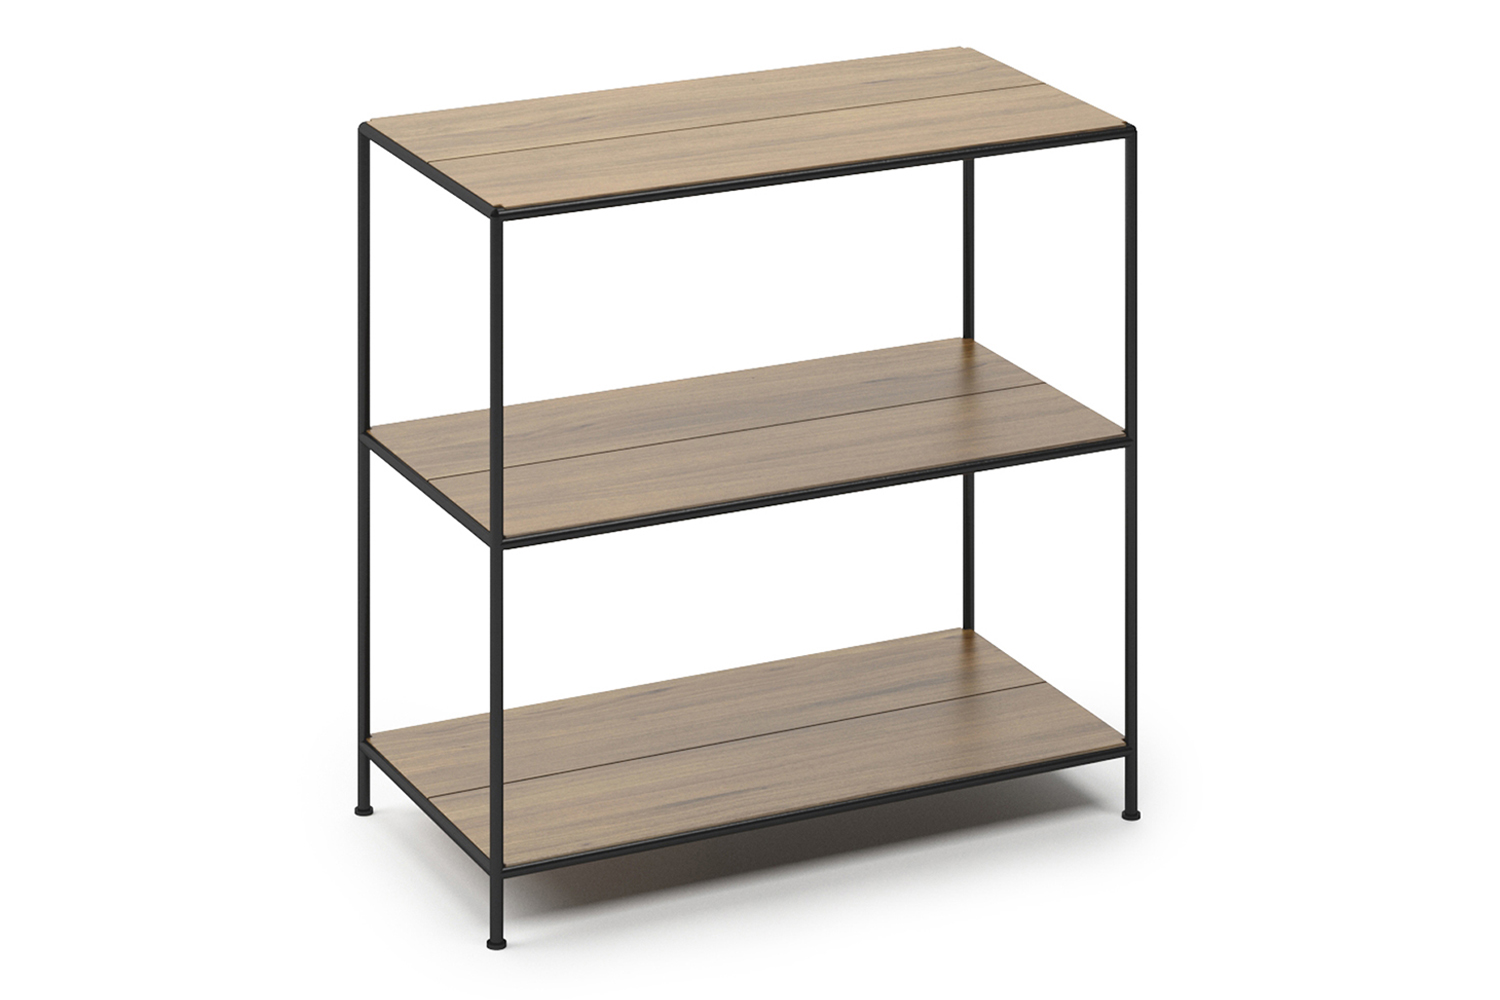 IKON SHELVING | 3 TIER